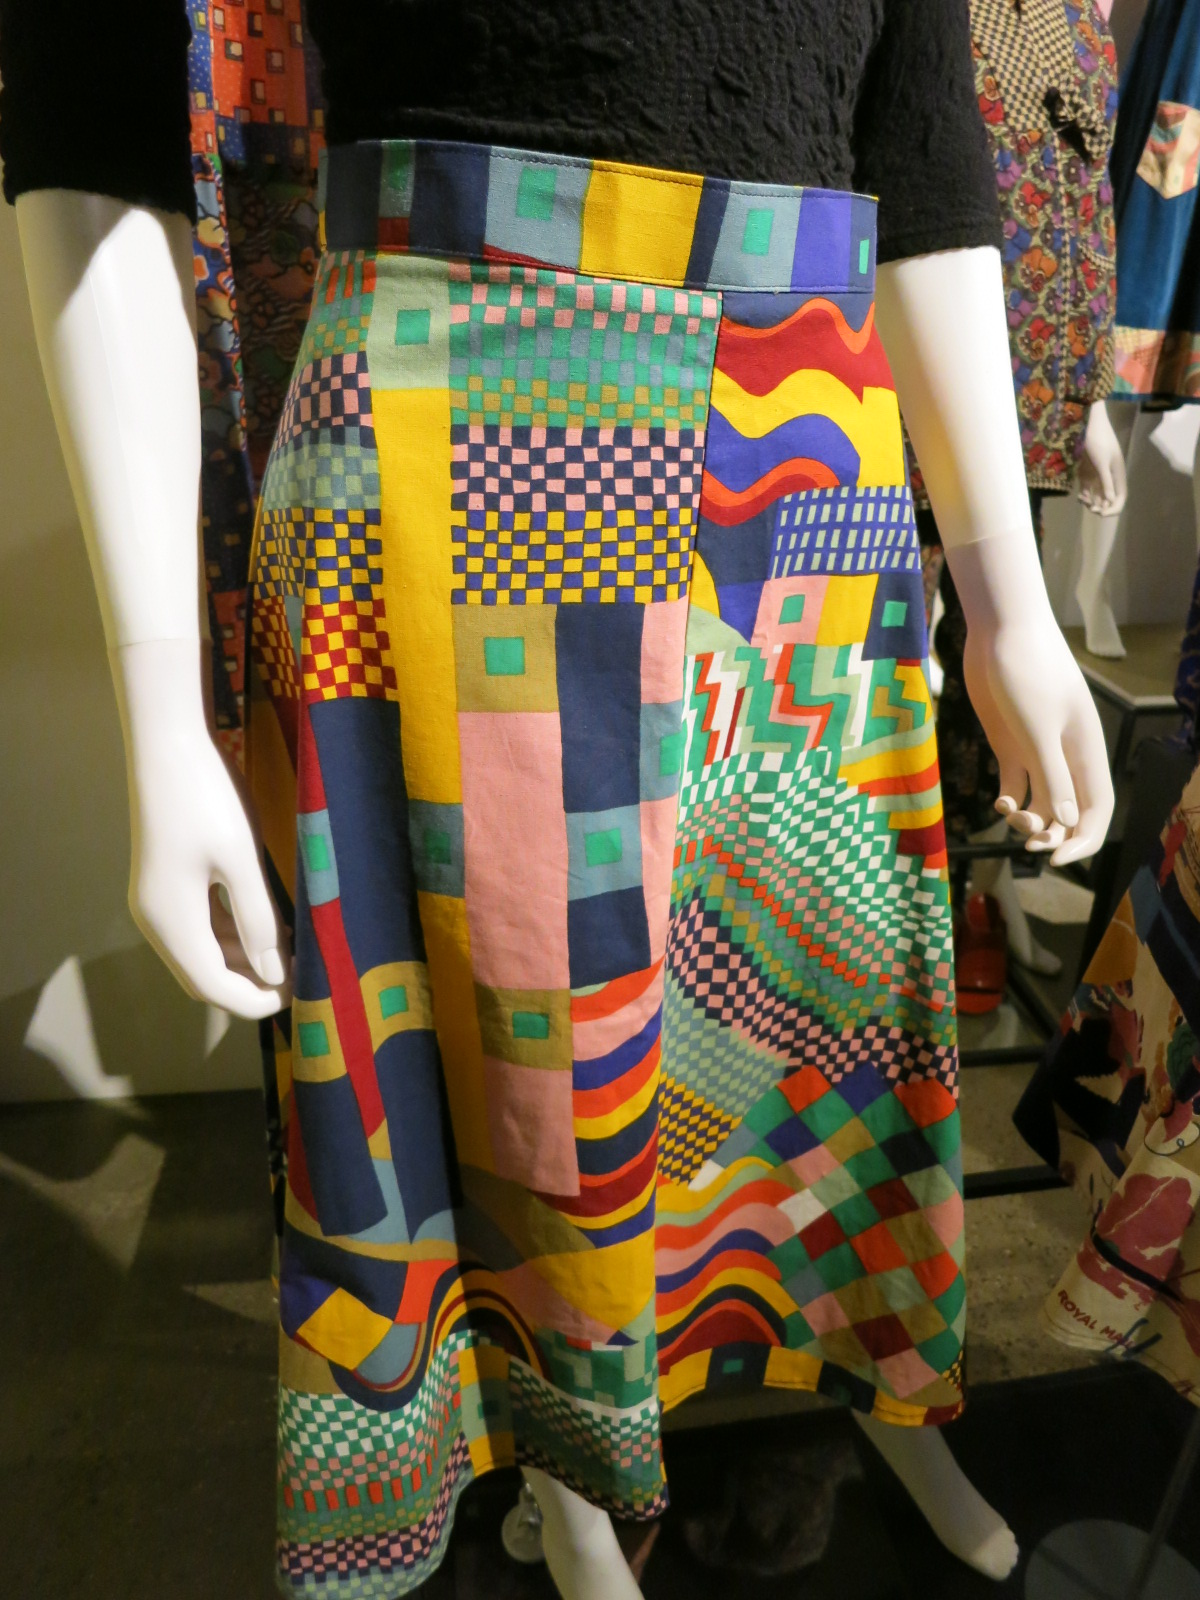 Liberty in Fashion exhibition at the Fashion & Textile Museum, Bermondsey, London 2015. This print has been borrowed from a tapestry designed by Gunta Stolzl, a Bauhaus student in the 1920s. This was a very popular design for Liberty.